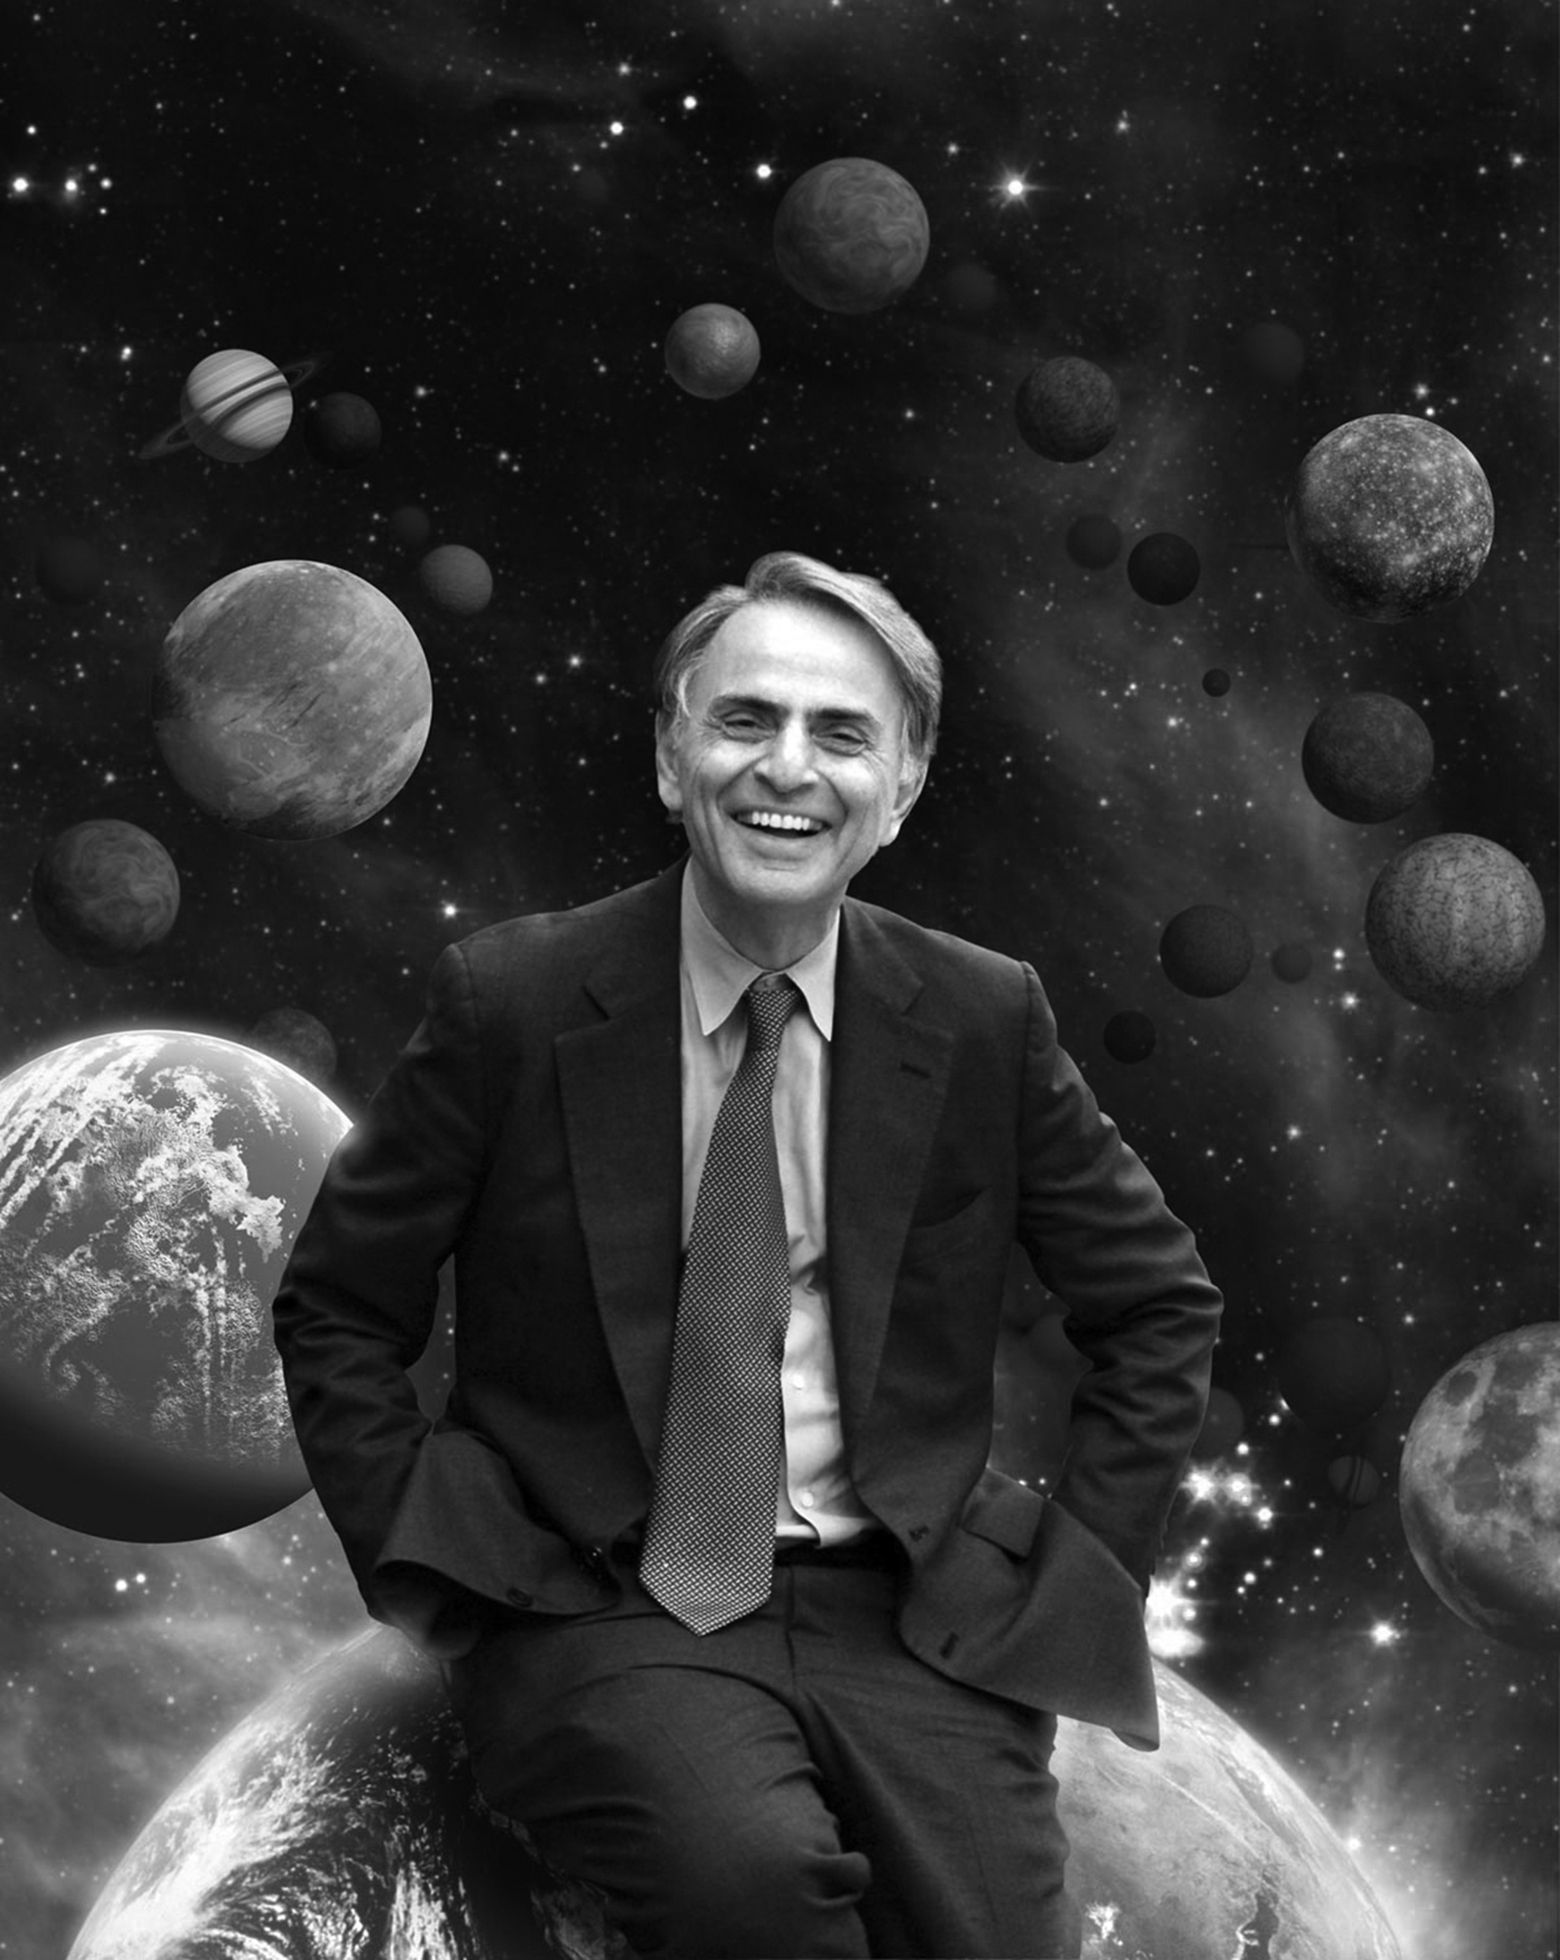 Carl Sagan smiles widely as he sits on Earth with the other planets and stars of the solar system in the background.